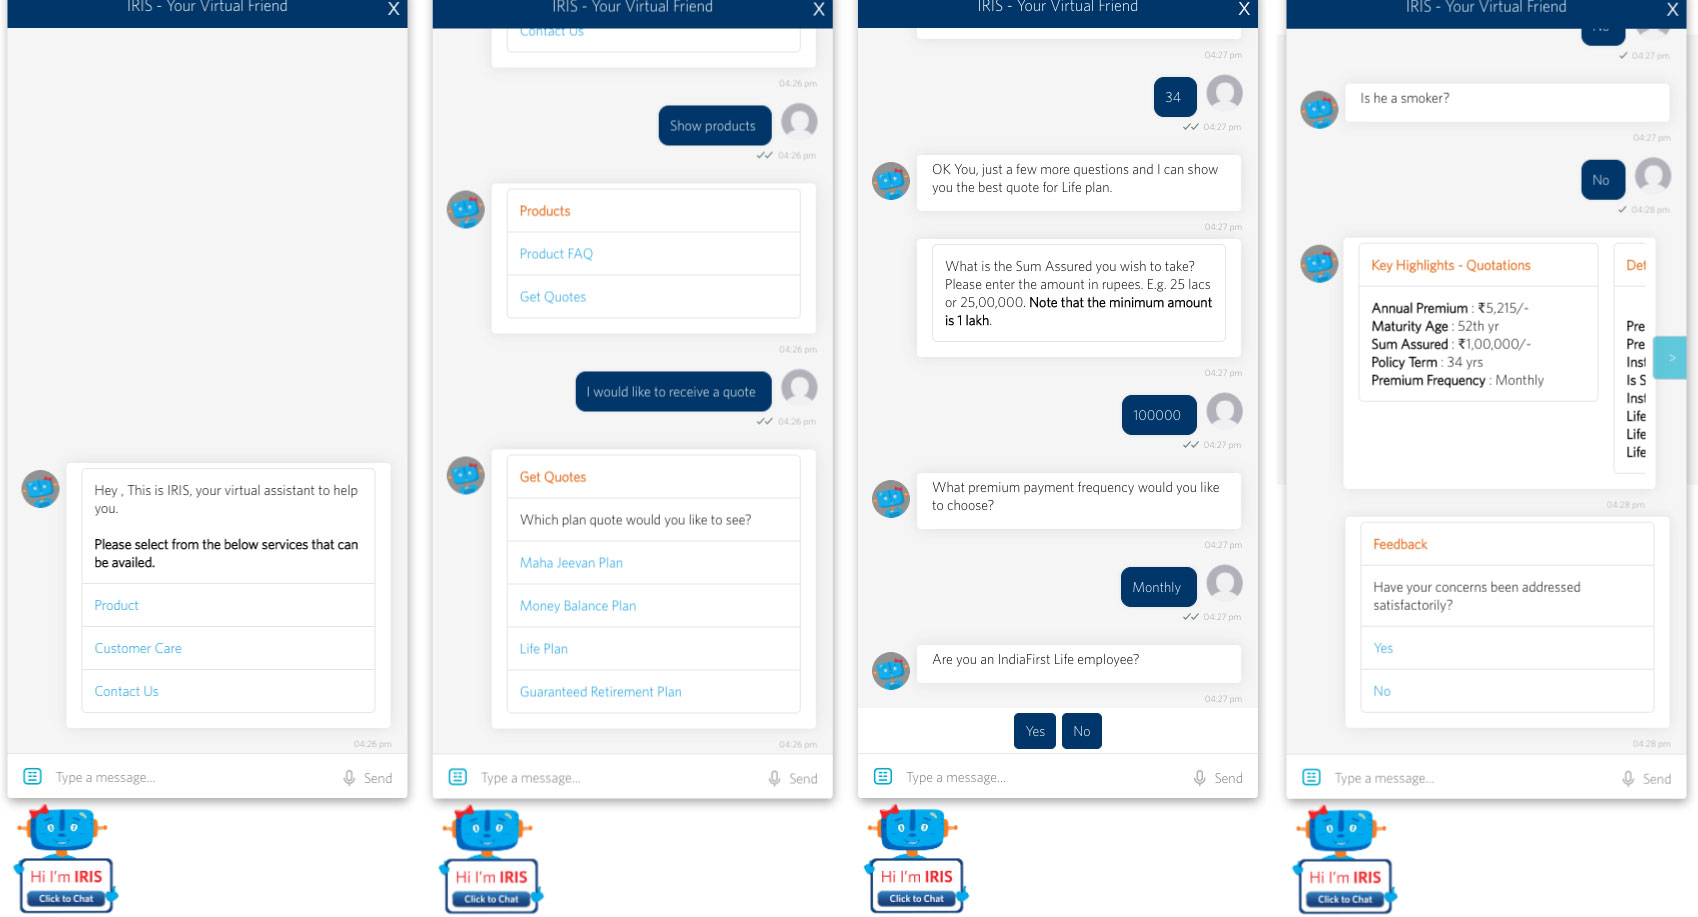 Guaranteed Life Insurance Quotes Indiafirst Life Insurance Launches 'iris' Chatbot To Quote